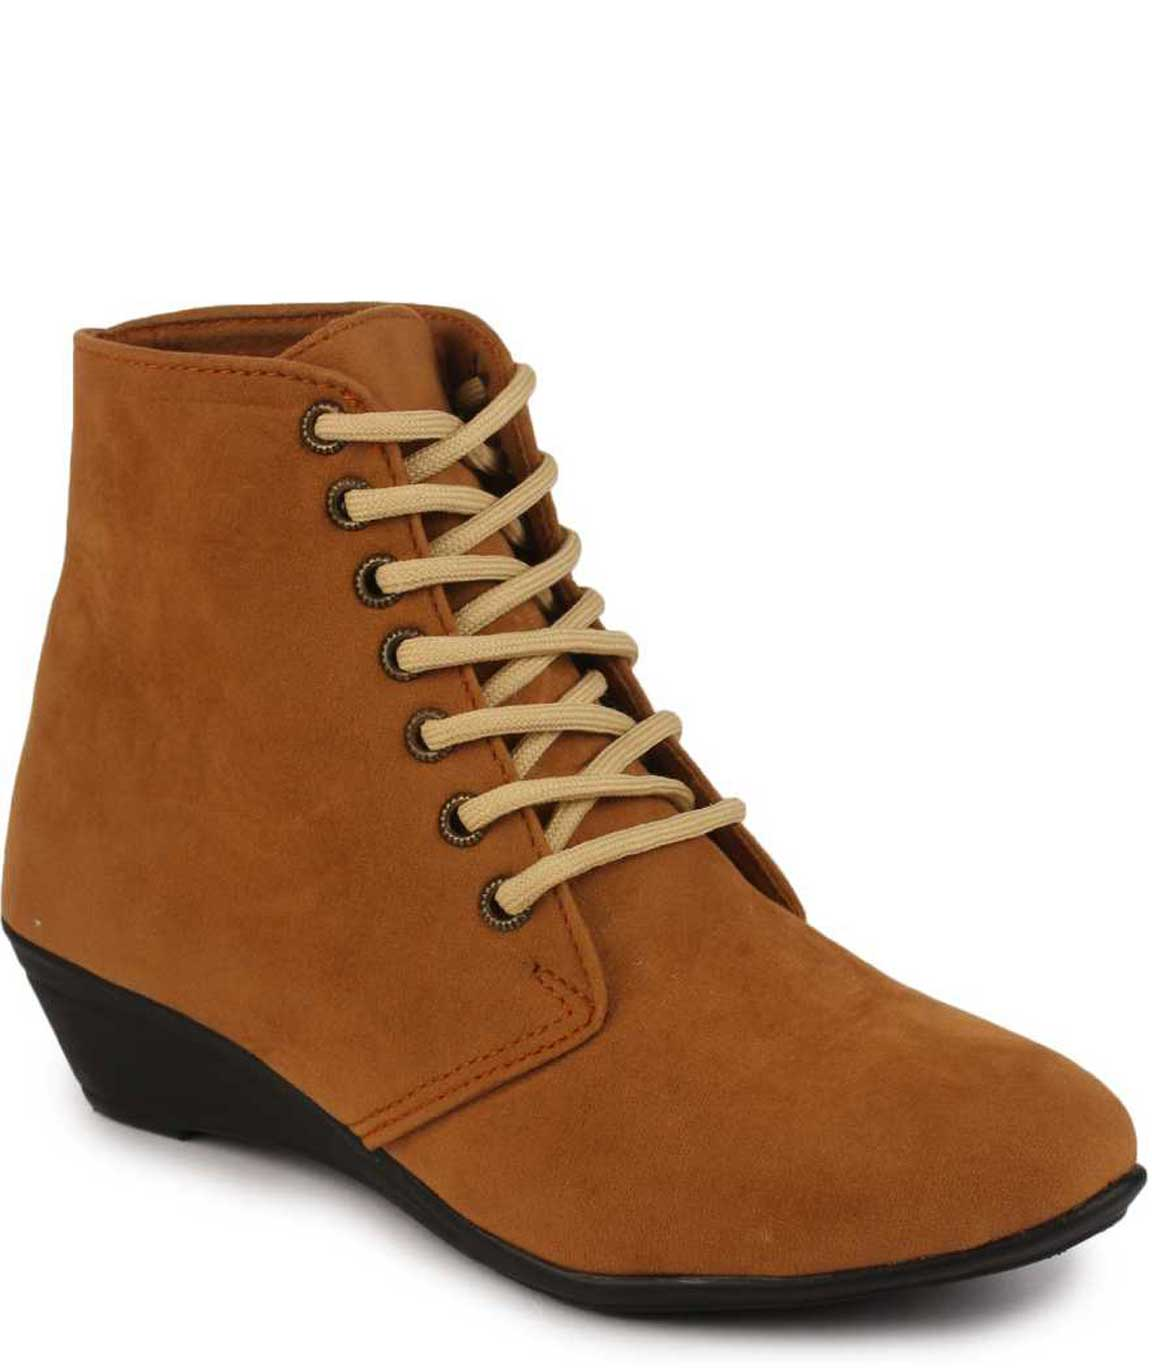 BOOT FOR WOMEN (TAN)